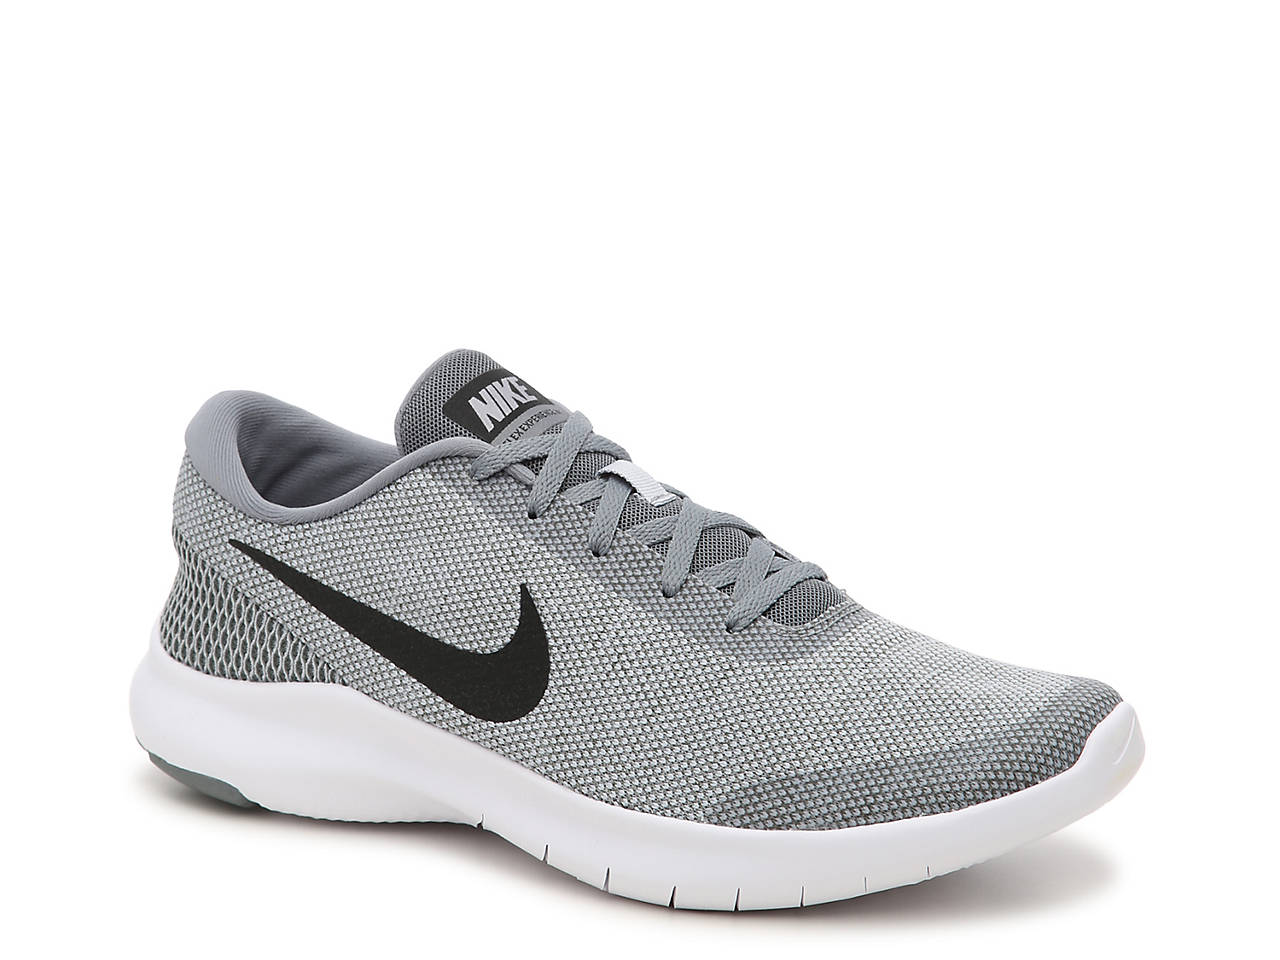 6c4dd451c5d Nike Flex Experience RN 7 Running Shoe - Men s Men s Shoes